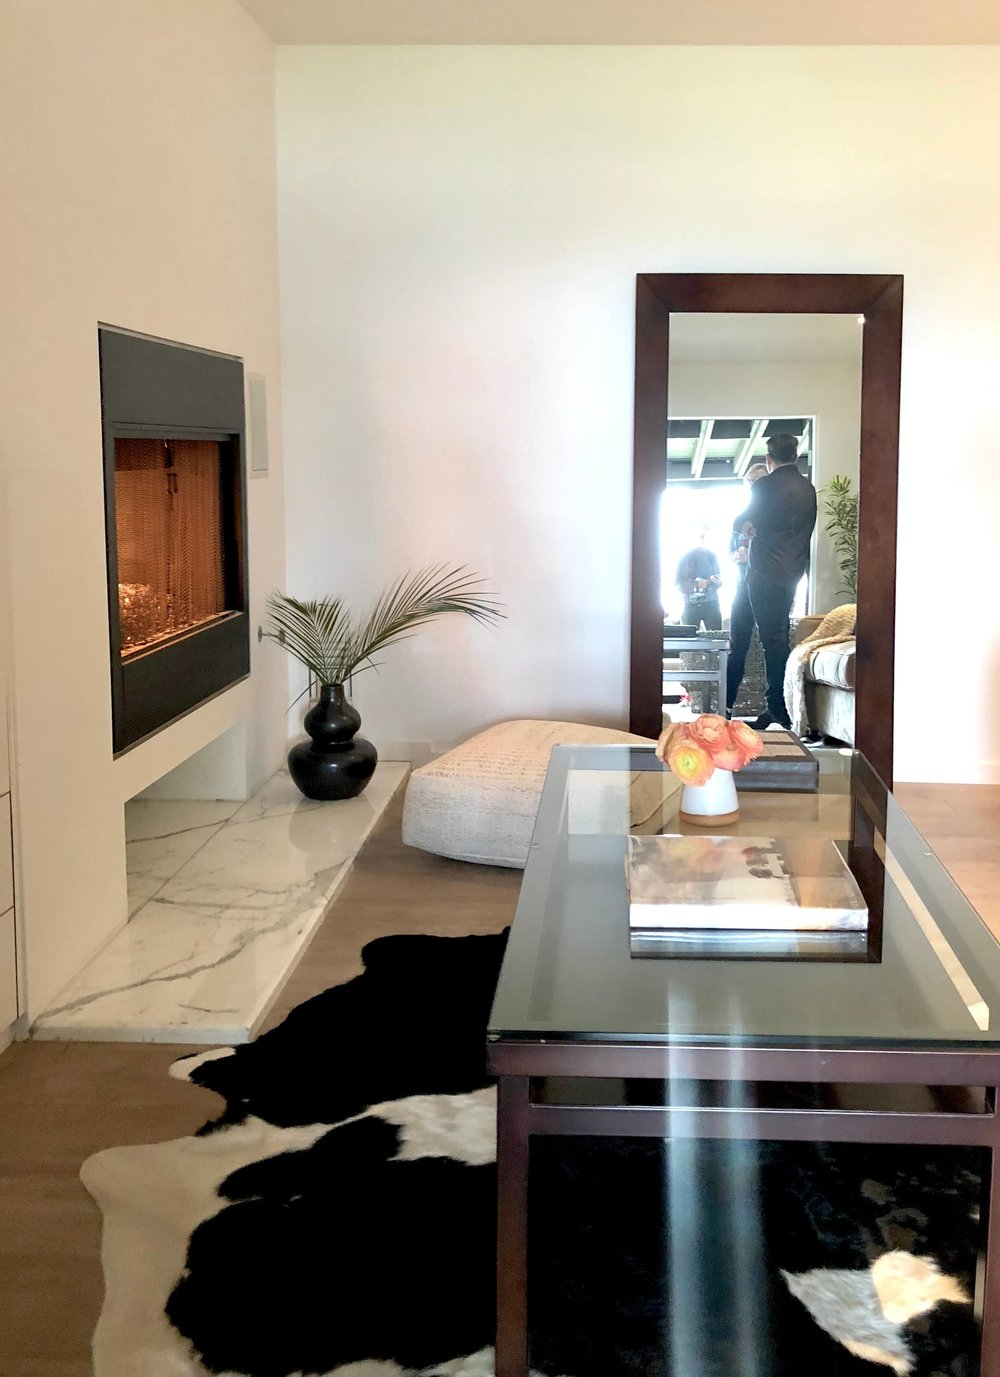 Lower den with leaning mirror, fireplace and cowhide rug #cowhiderug #leaningmirror